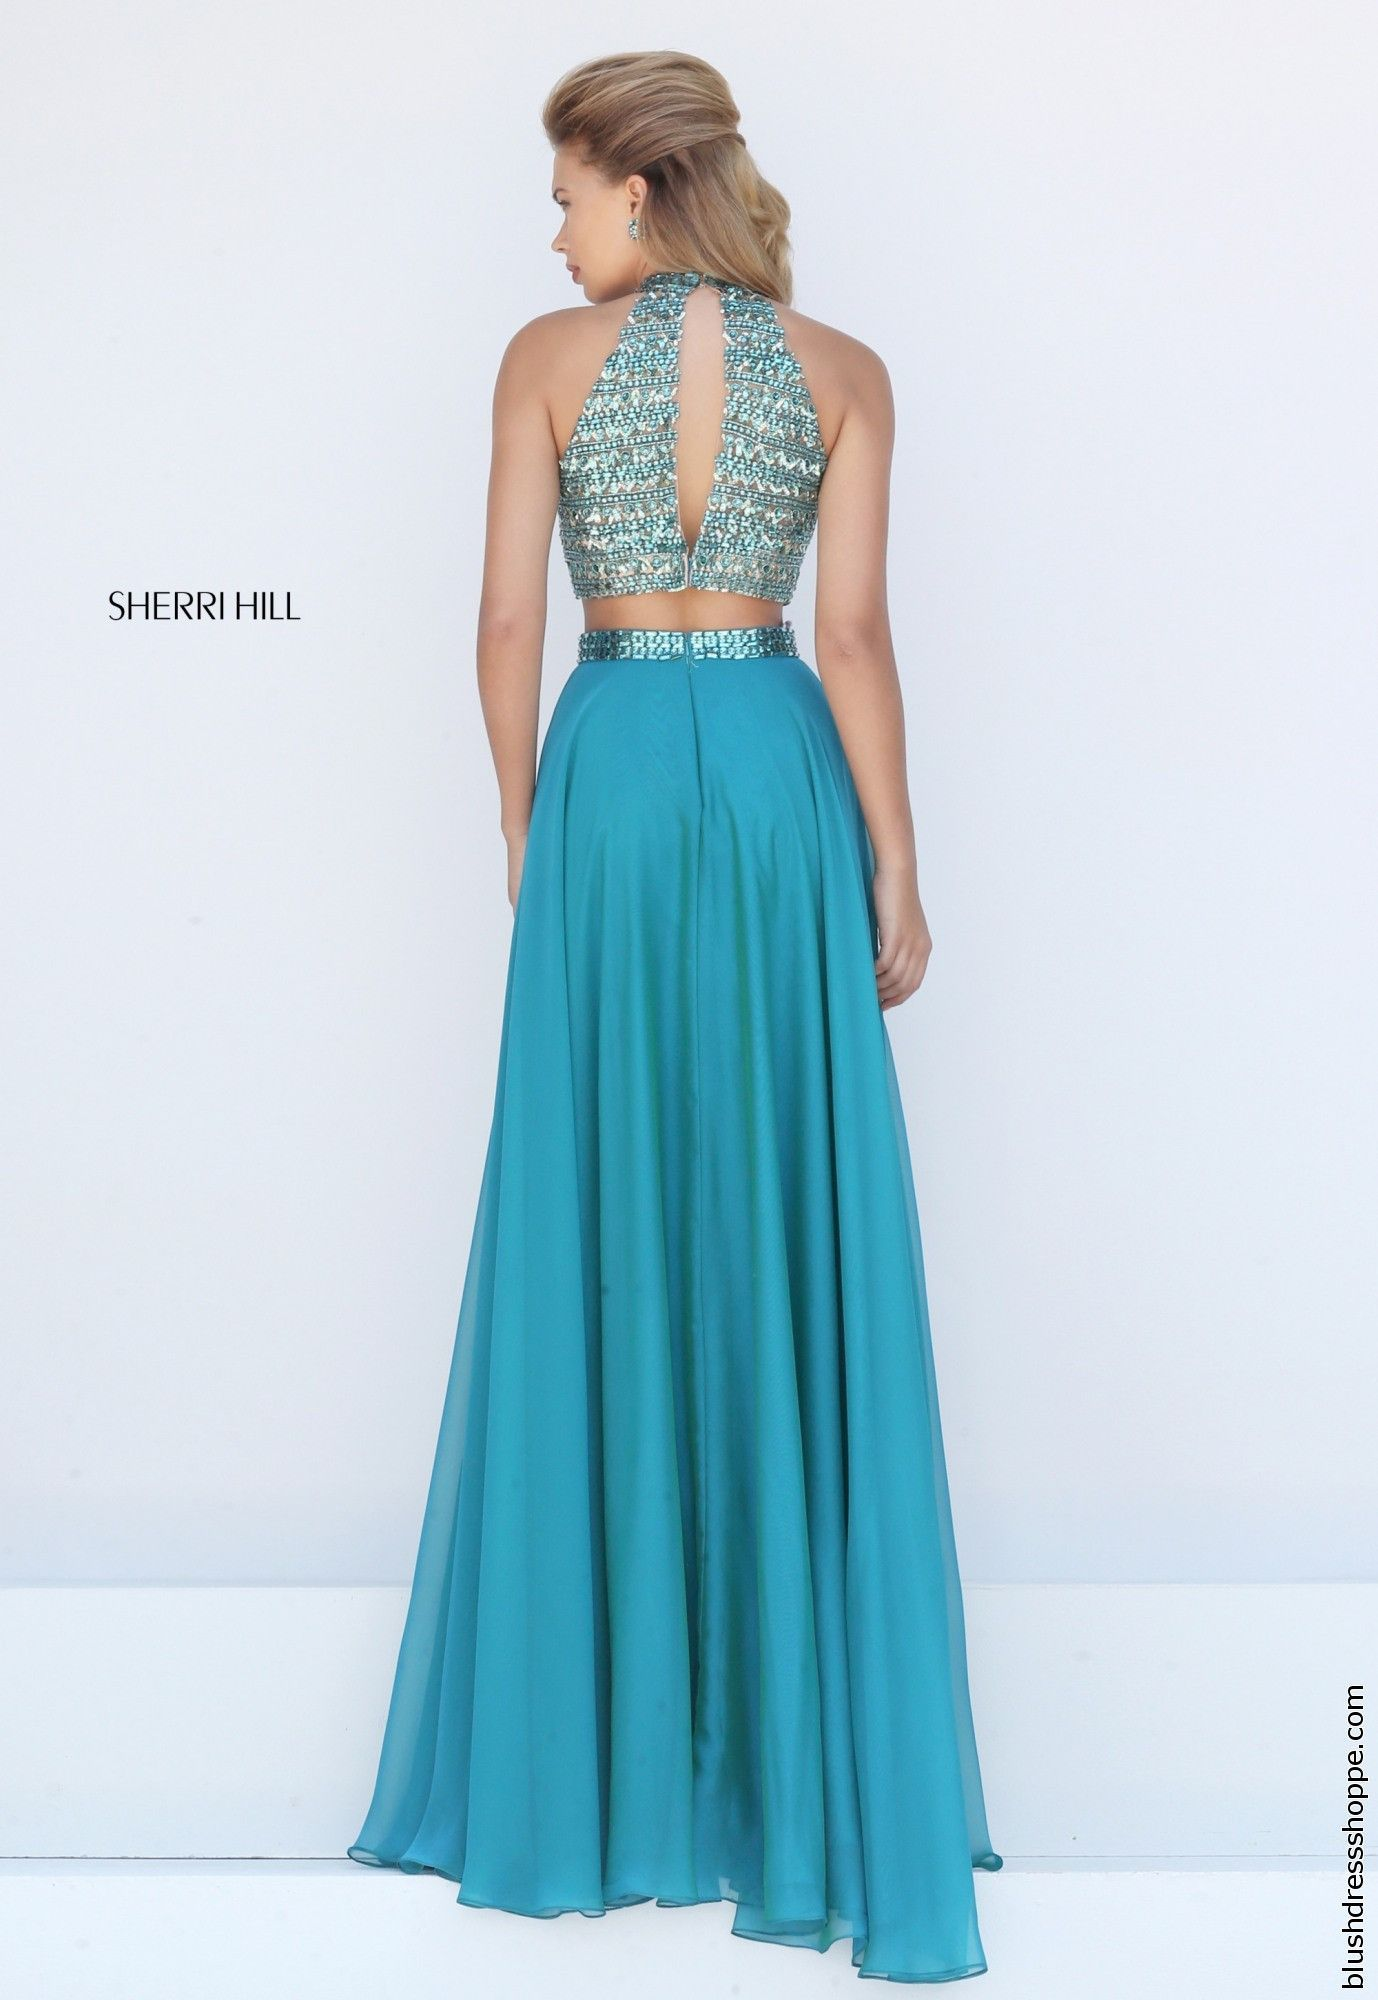 Sherri Hill 50096 | Dresses | Pinterest | Prom, Fancy clothes and ...